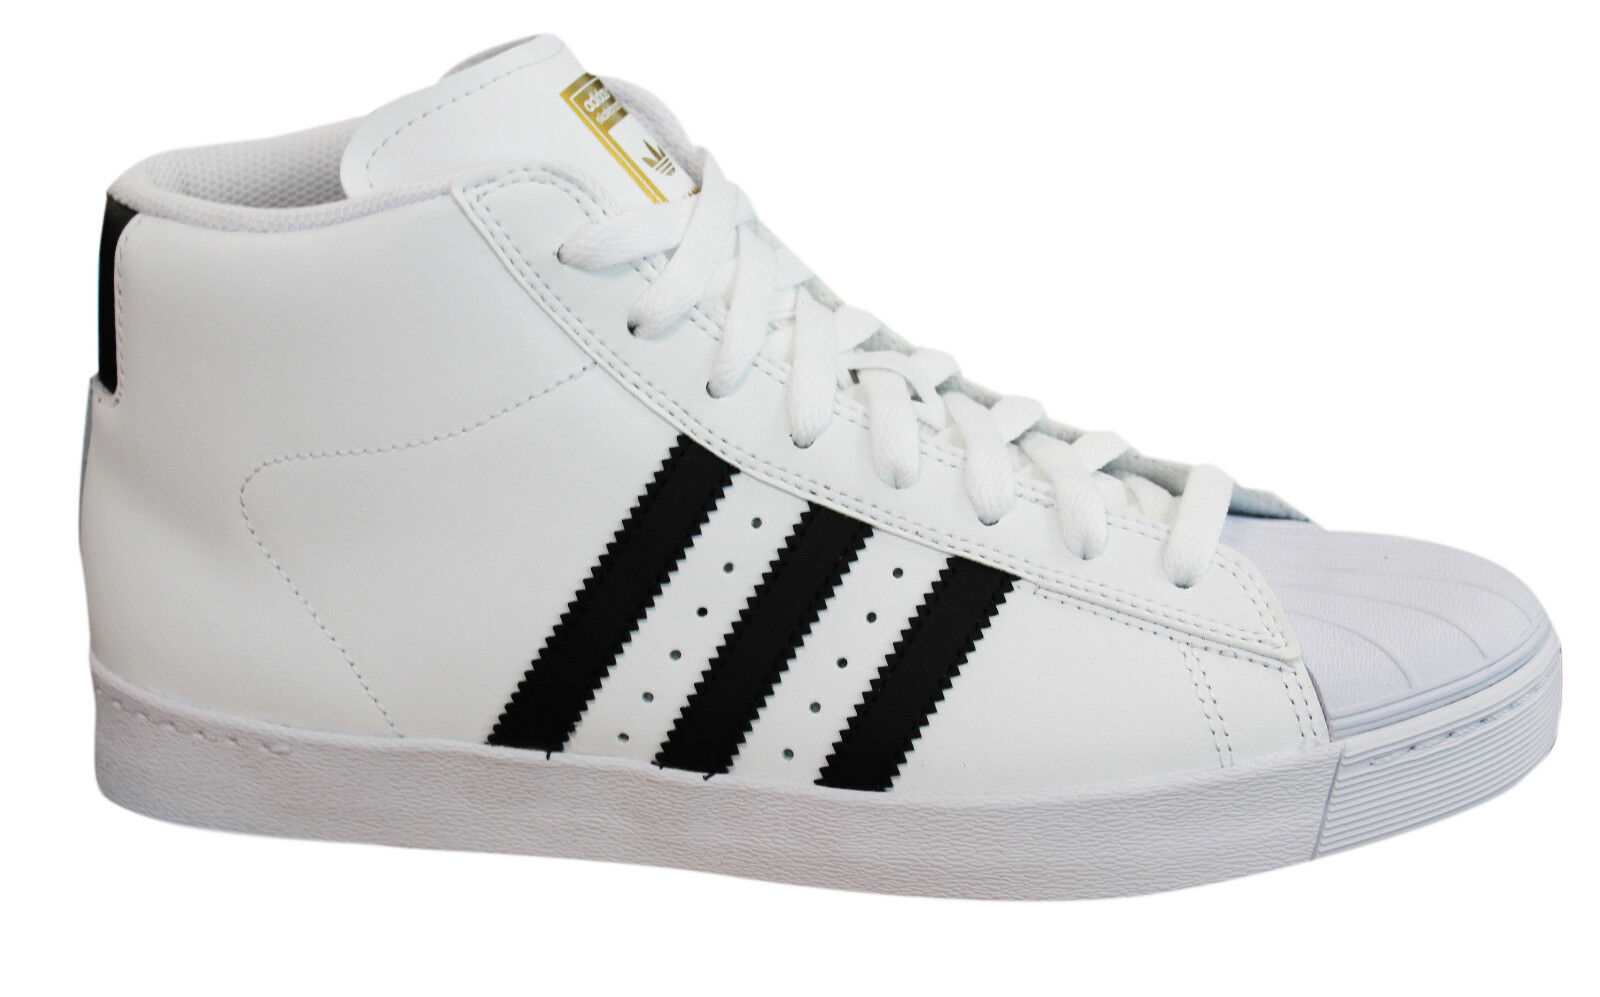 Adidas Originals Pro Model Vulc Advance Mens Hi Top Trainers White BY4095 M17